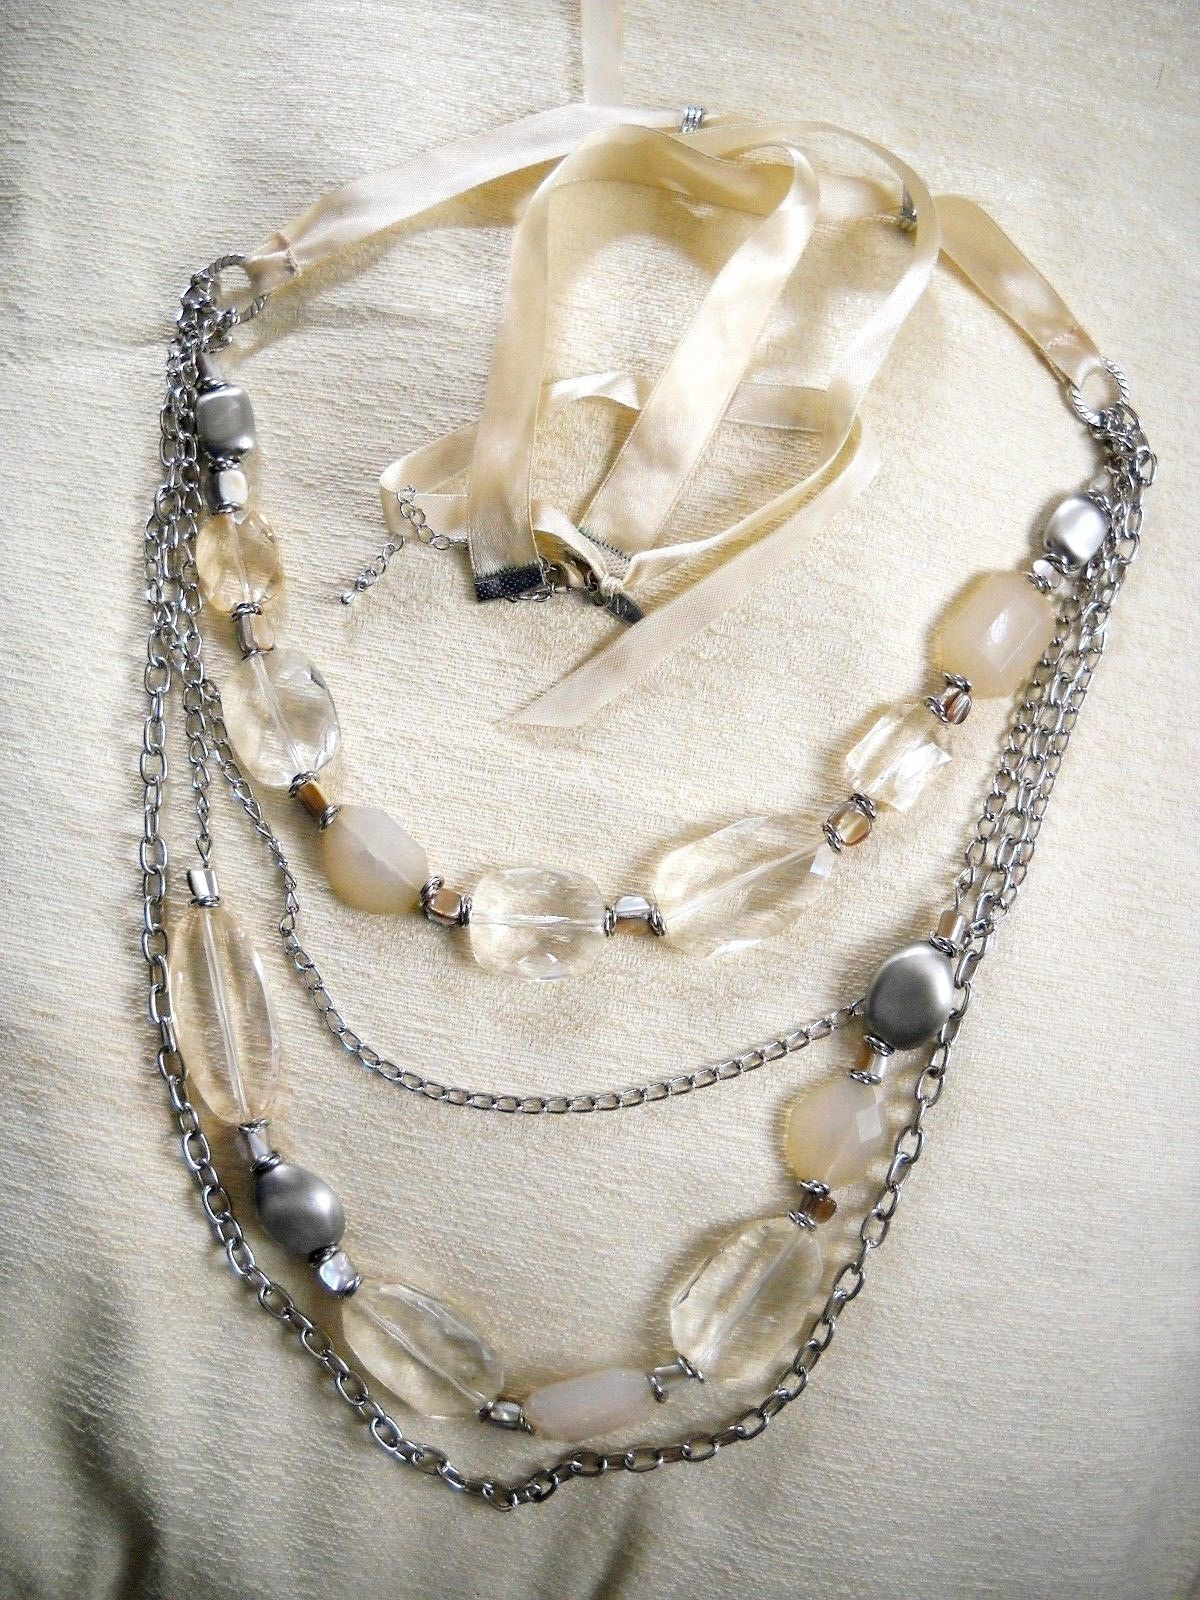 Primary image for 4-STRAND PALE YELLOW FAUX CRYSTAL & SILVER TONE CHAIN-LINK BELLY DANCING BELT